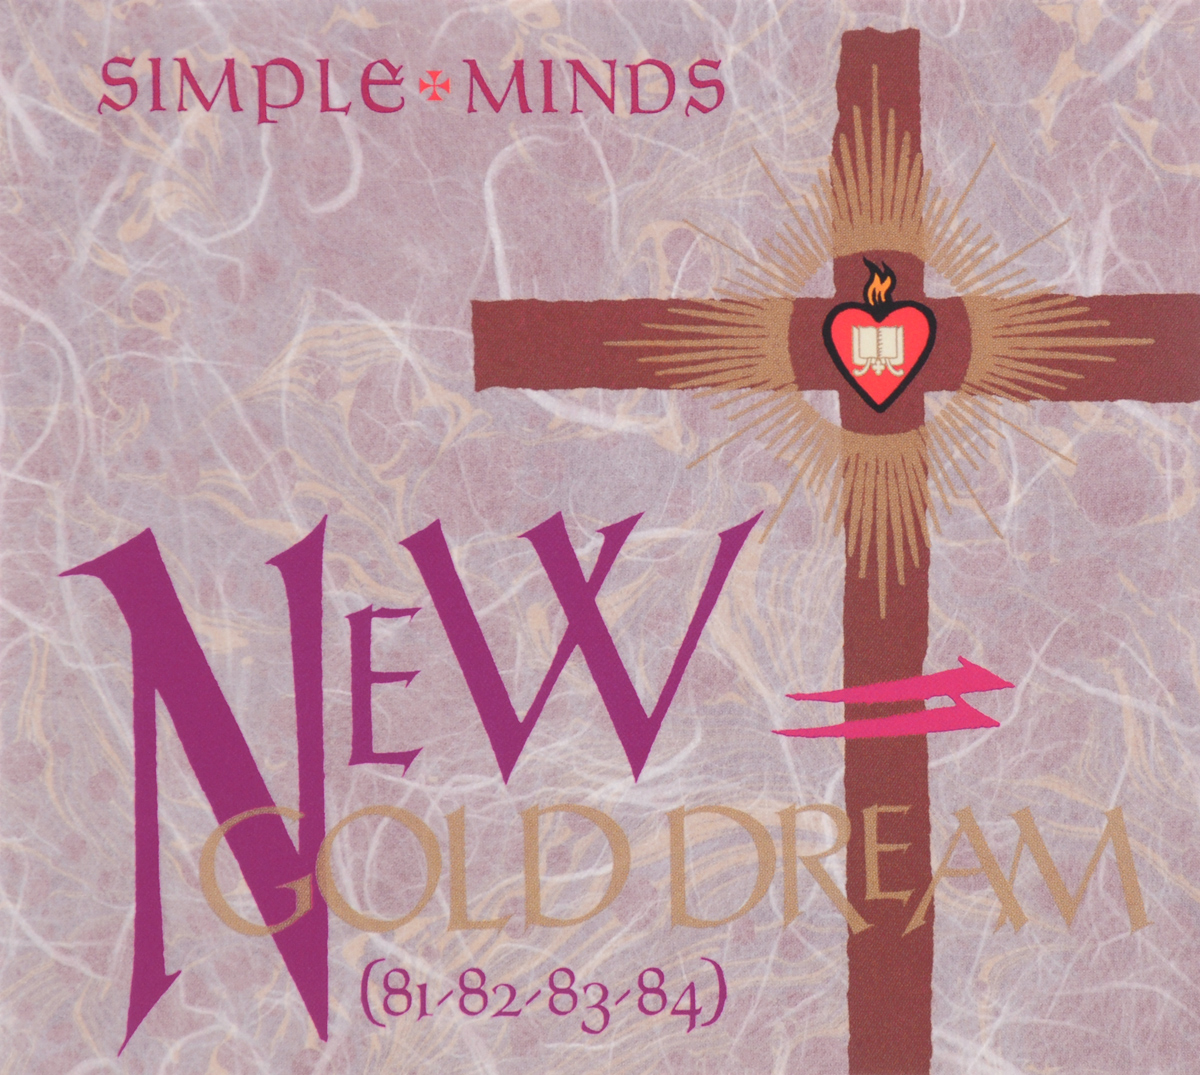 Simple Minds Simple Minds. New Gold Dream (81-82-83-84) (Deluxe) (2 CD) deluxe continental furniture handle drawer wardrobe door simple small red amber